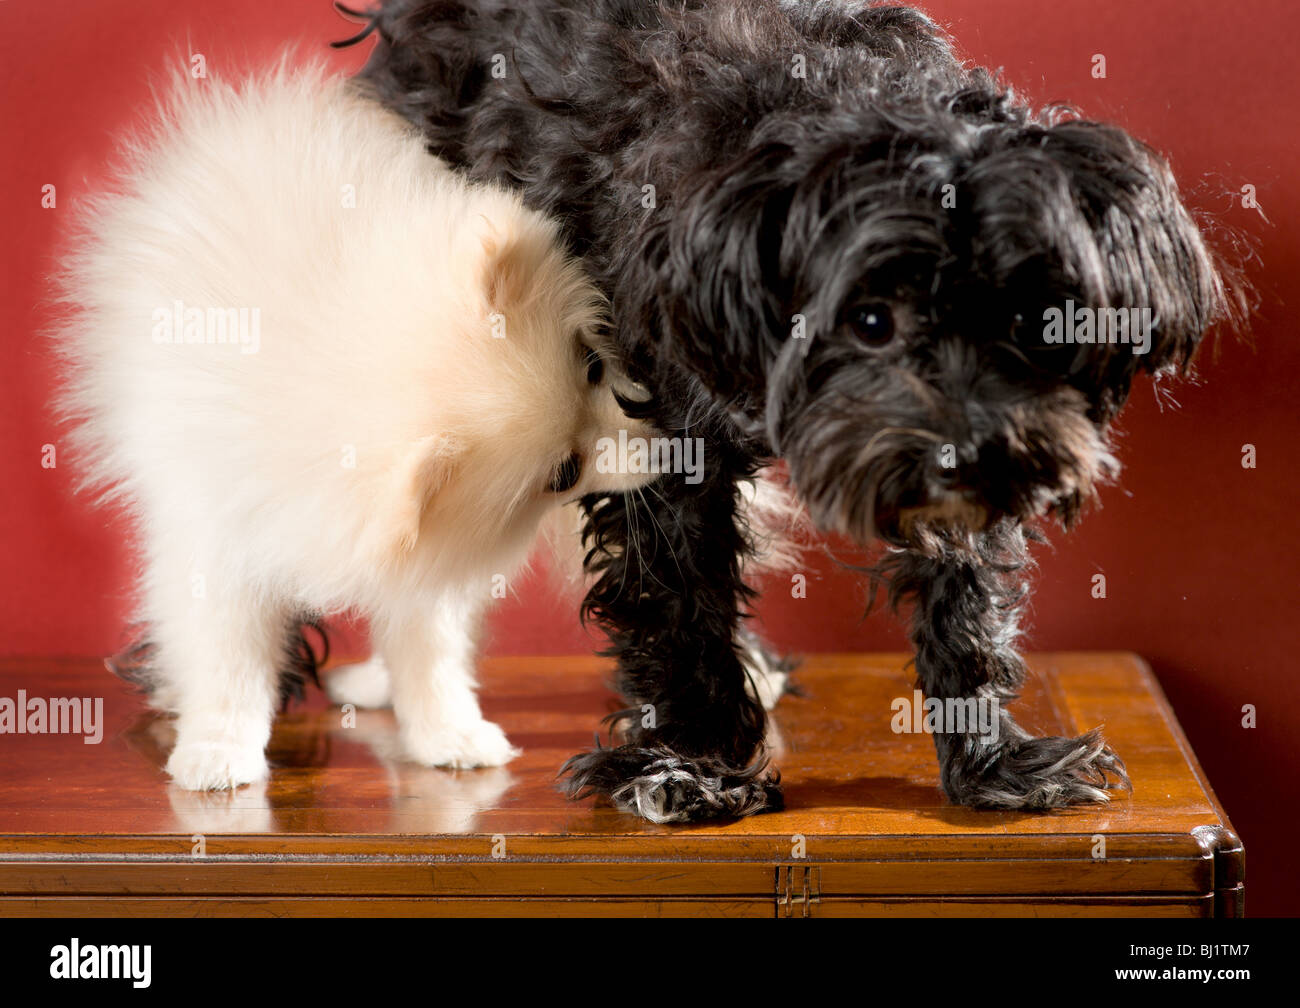 White pomeranian puppy standing next to a black and white maltese yorkie mix dog biting her leg - Stock Image